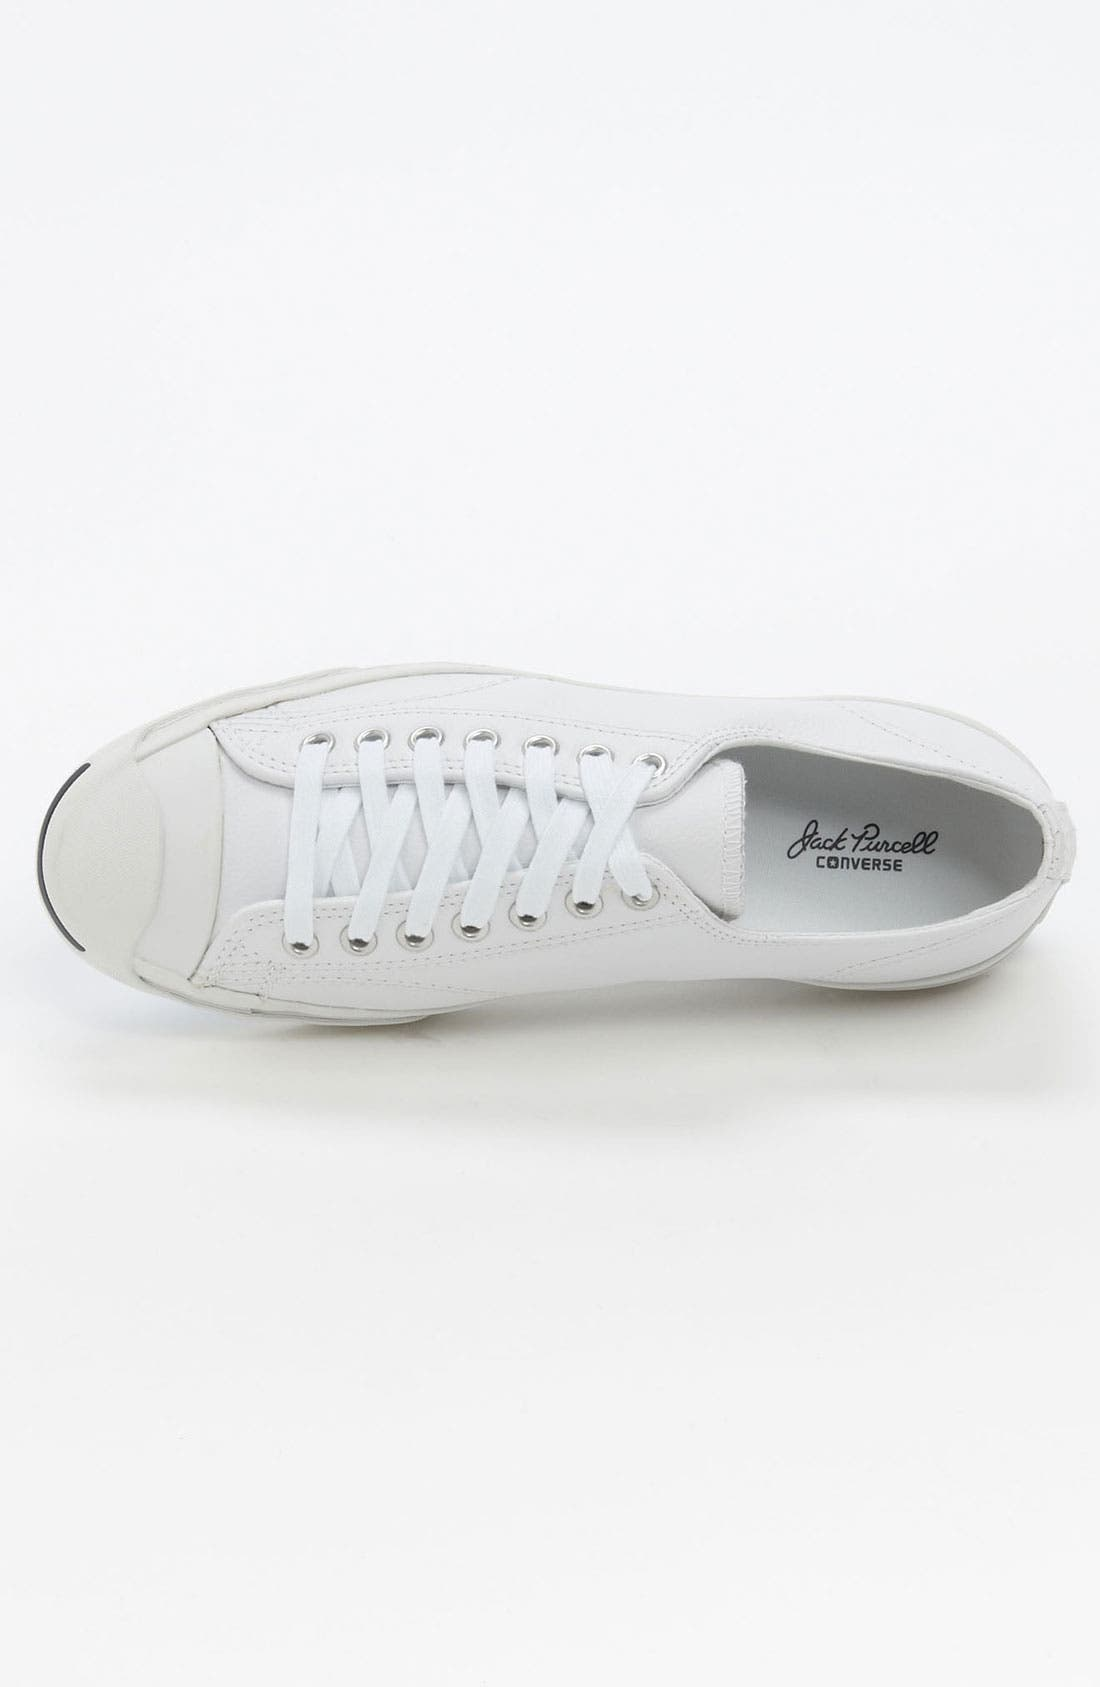 'Jack Purcell' Leather Sneaker,                             Alternate thumbnail 10, color,                             WHITE/ NAVY